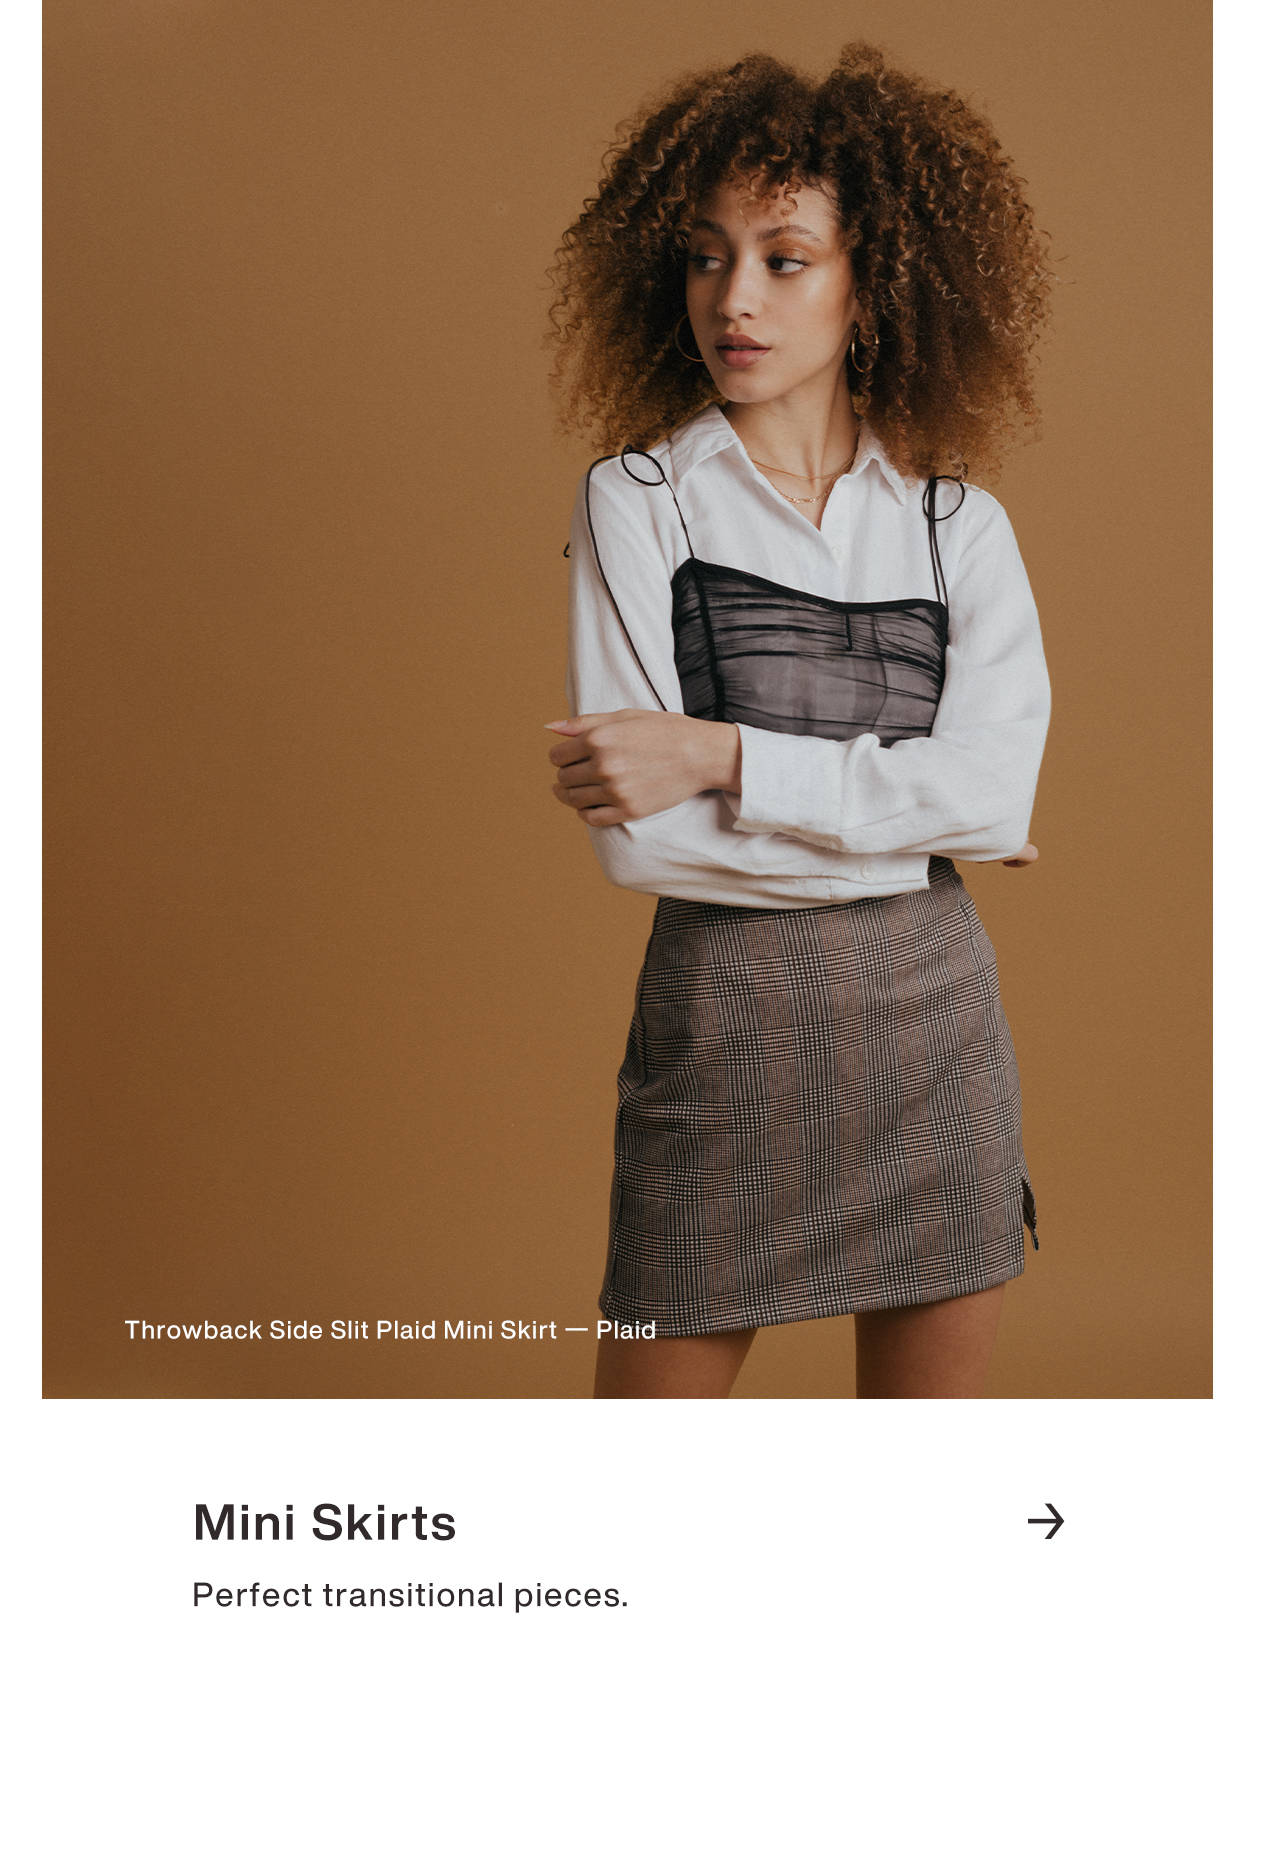 Mini Skirts - Perfect Transitional Pieces